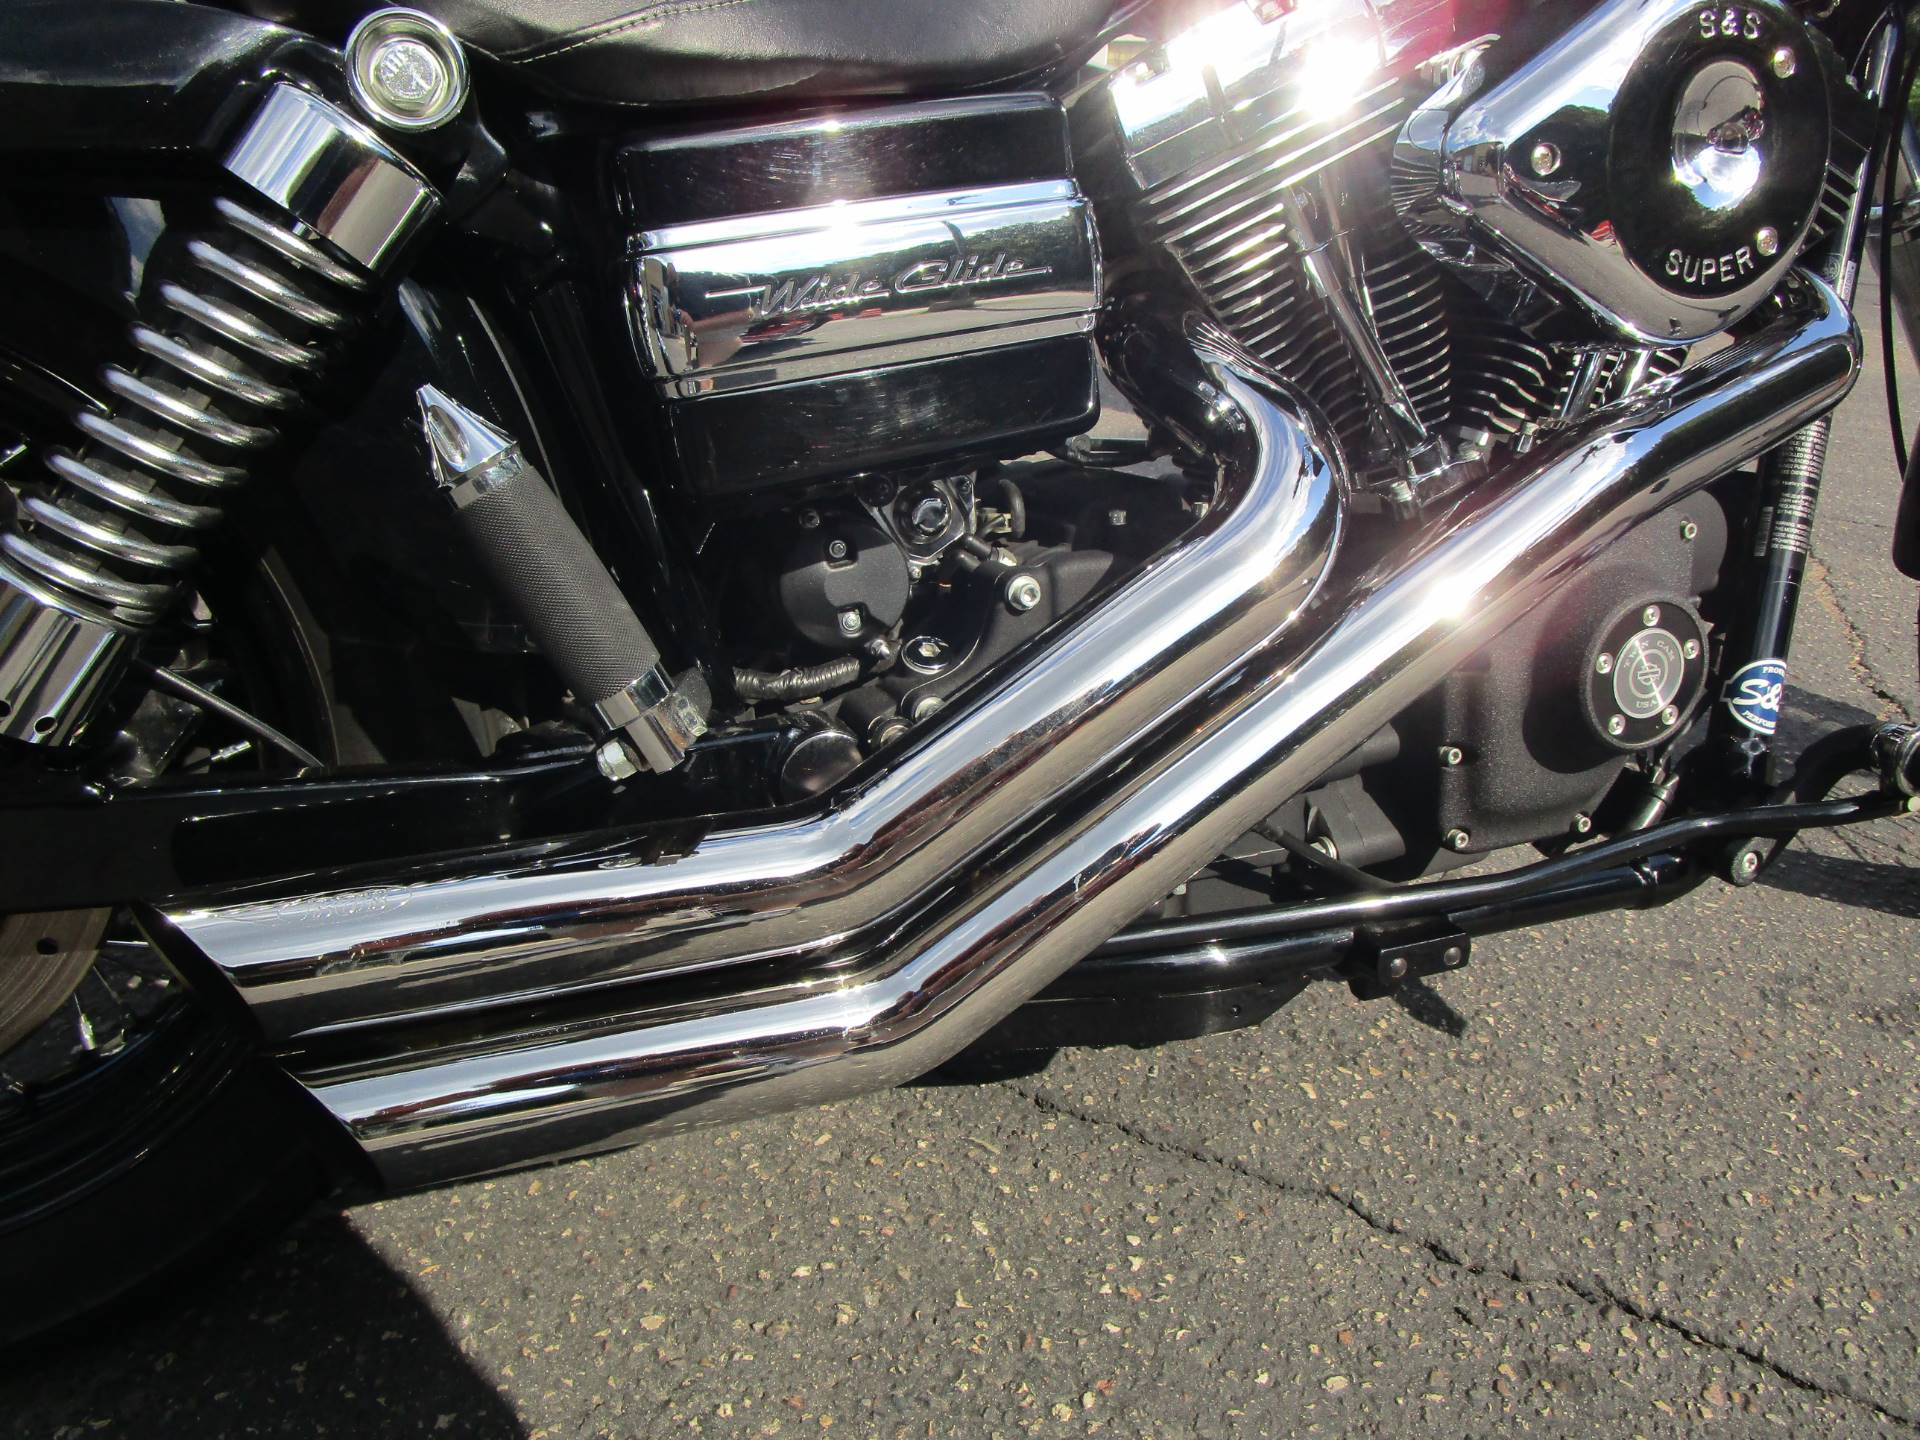 2010 Harley-Davidson Dyna® Wide Glide® in South Saint Paul, Minnesota